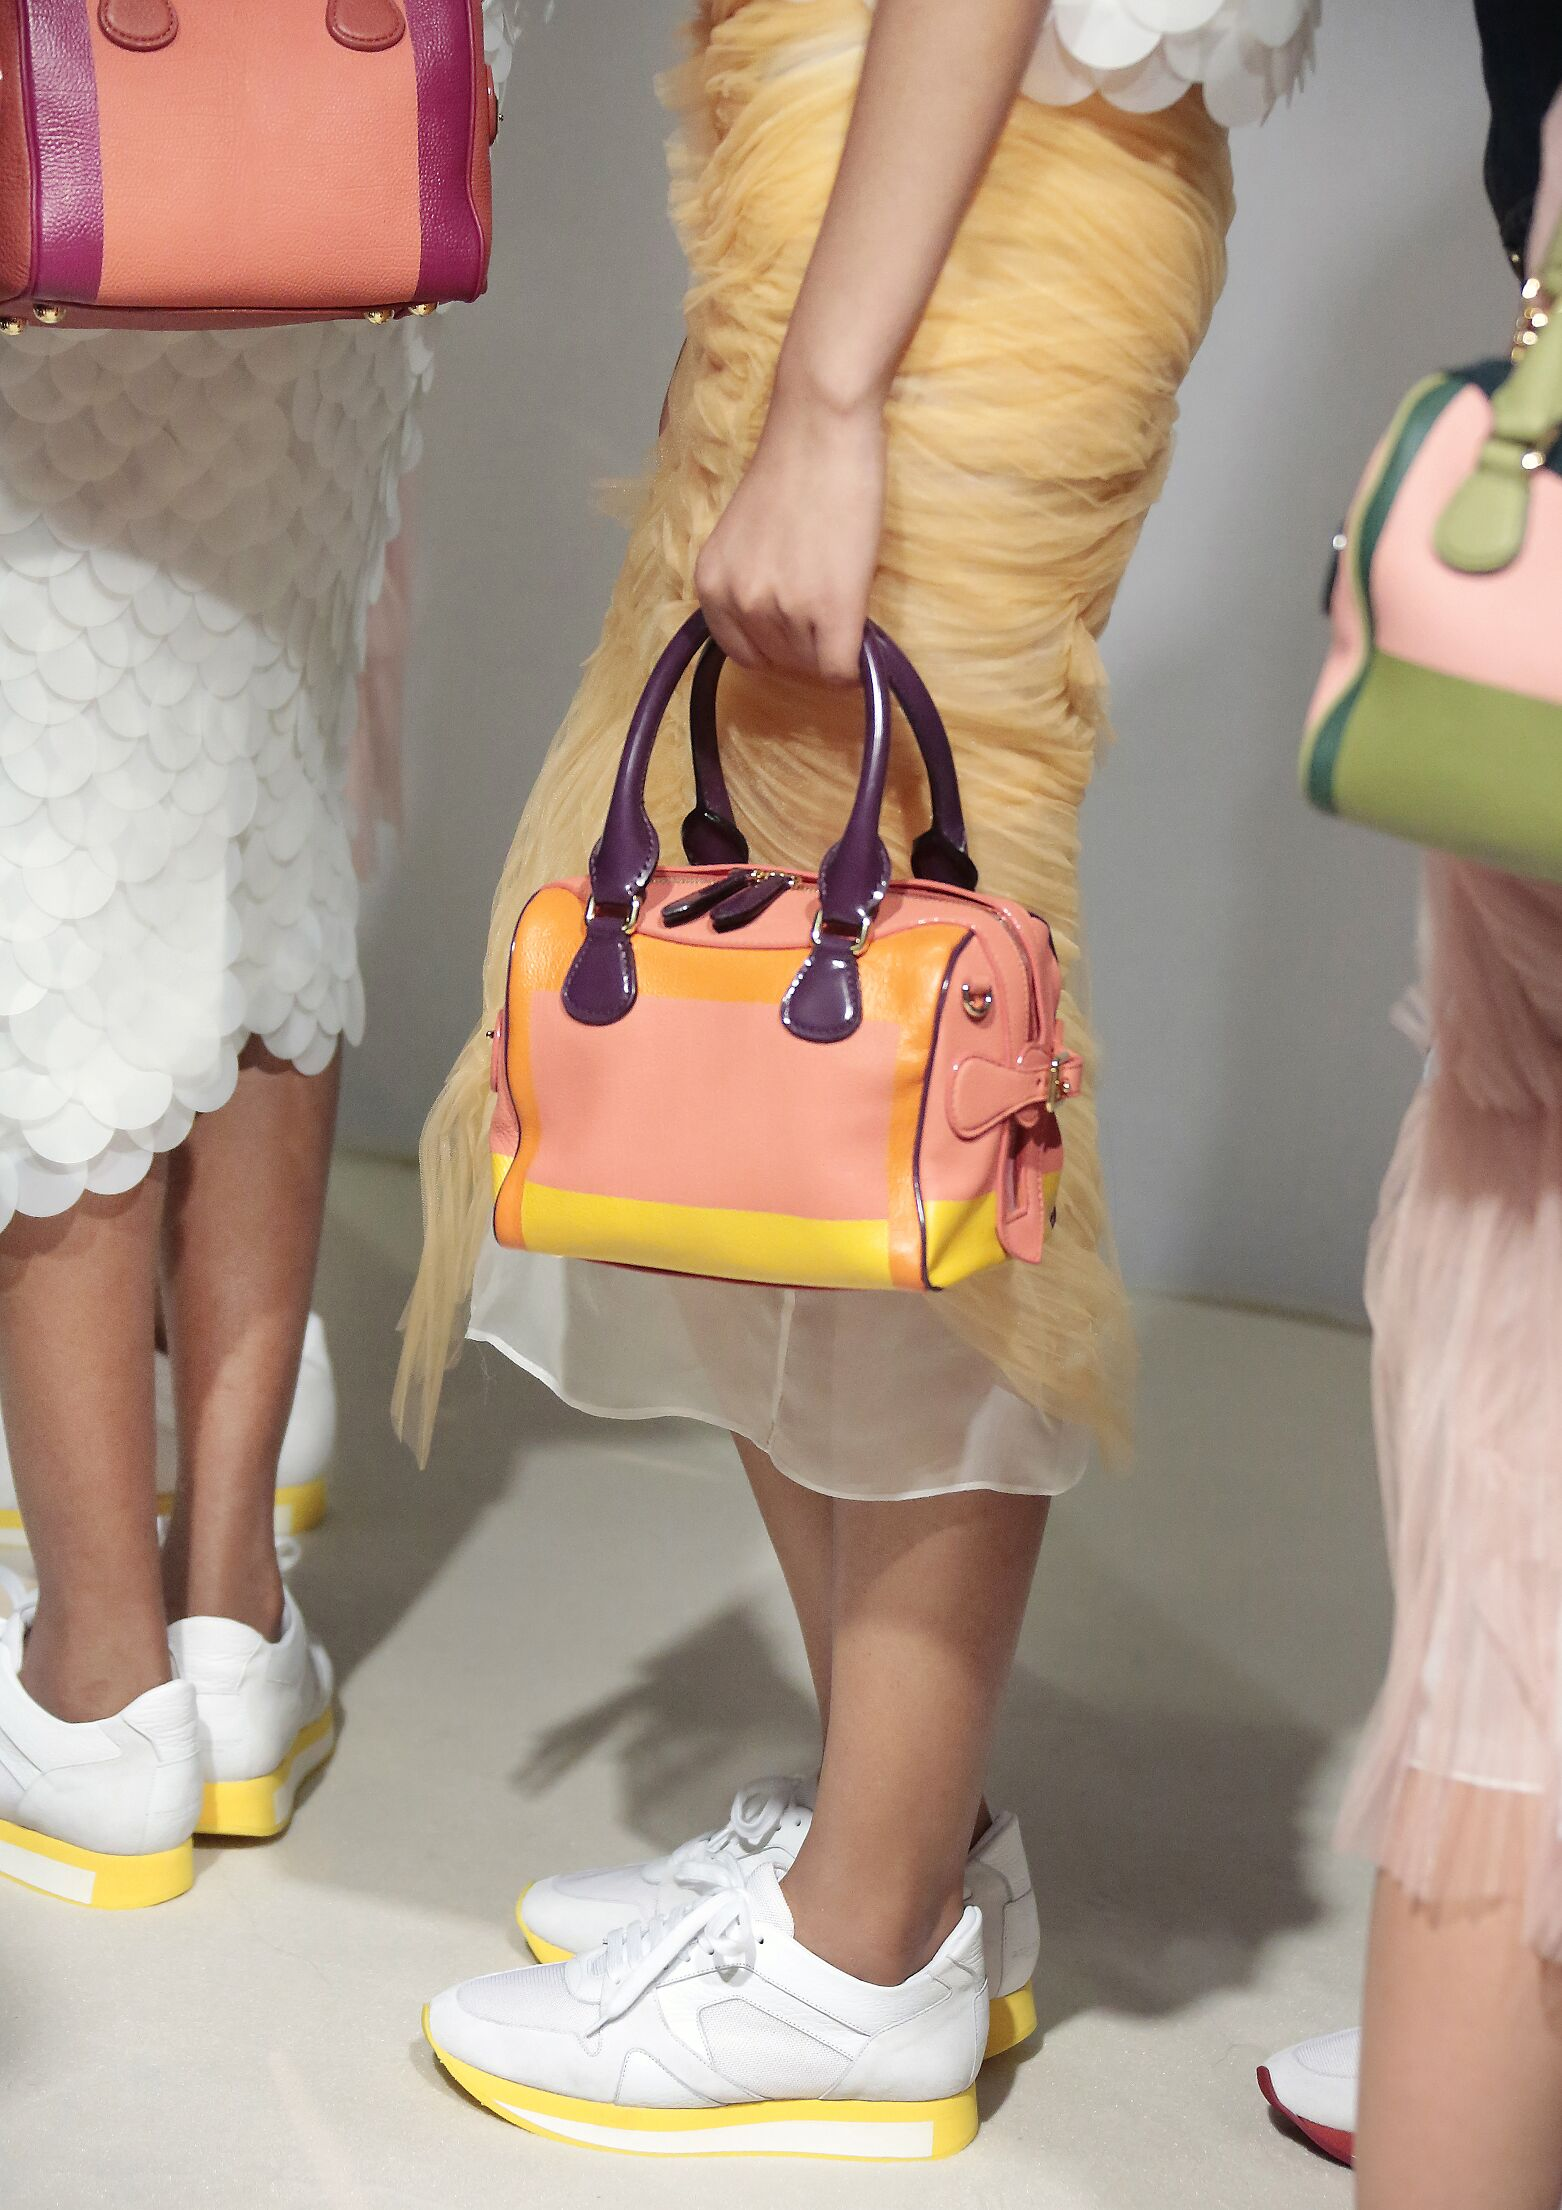 Fashion Model Backstage Burberry Prorsum Bag